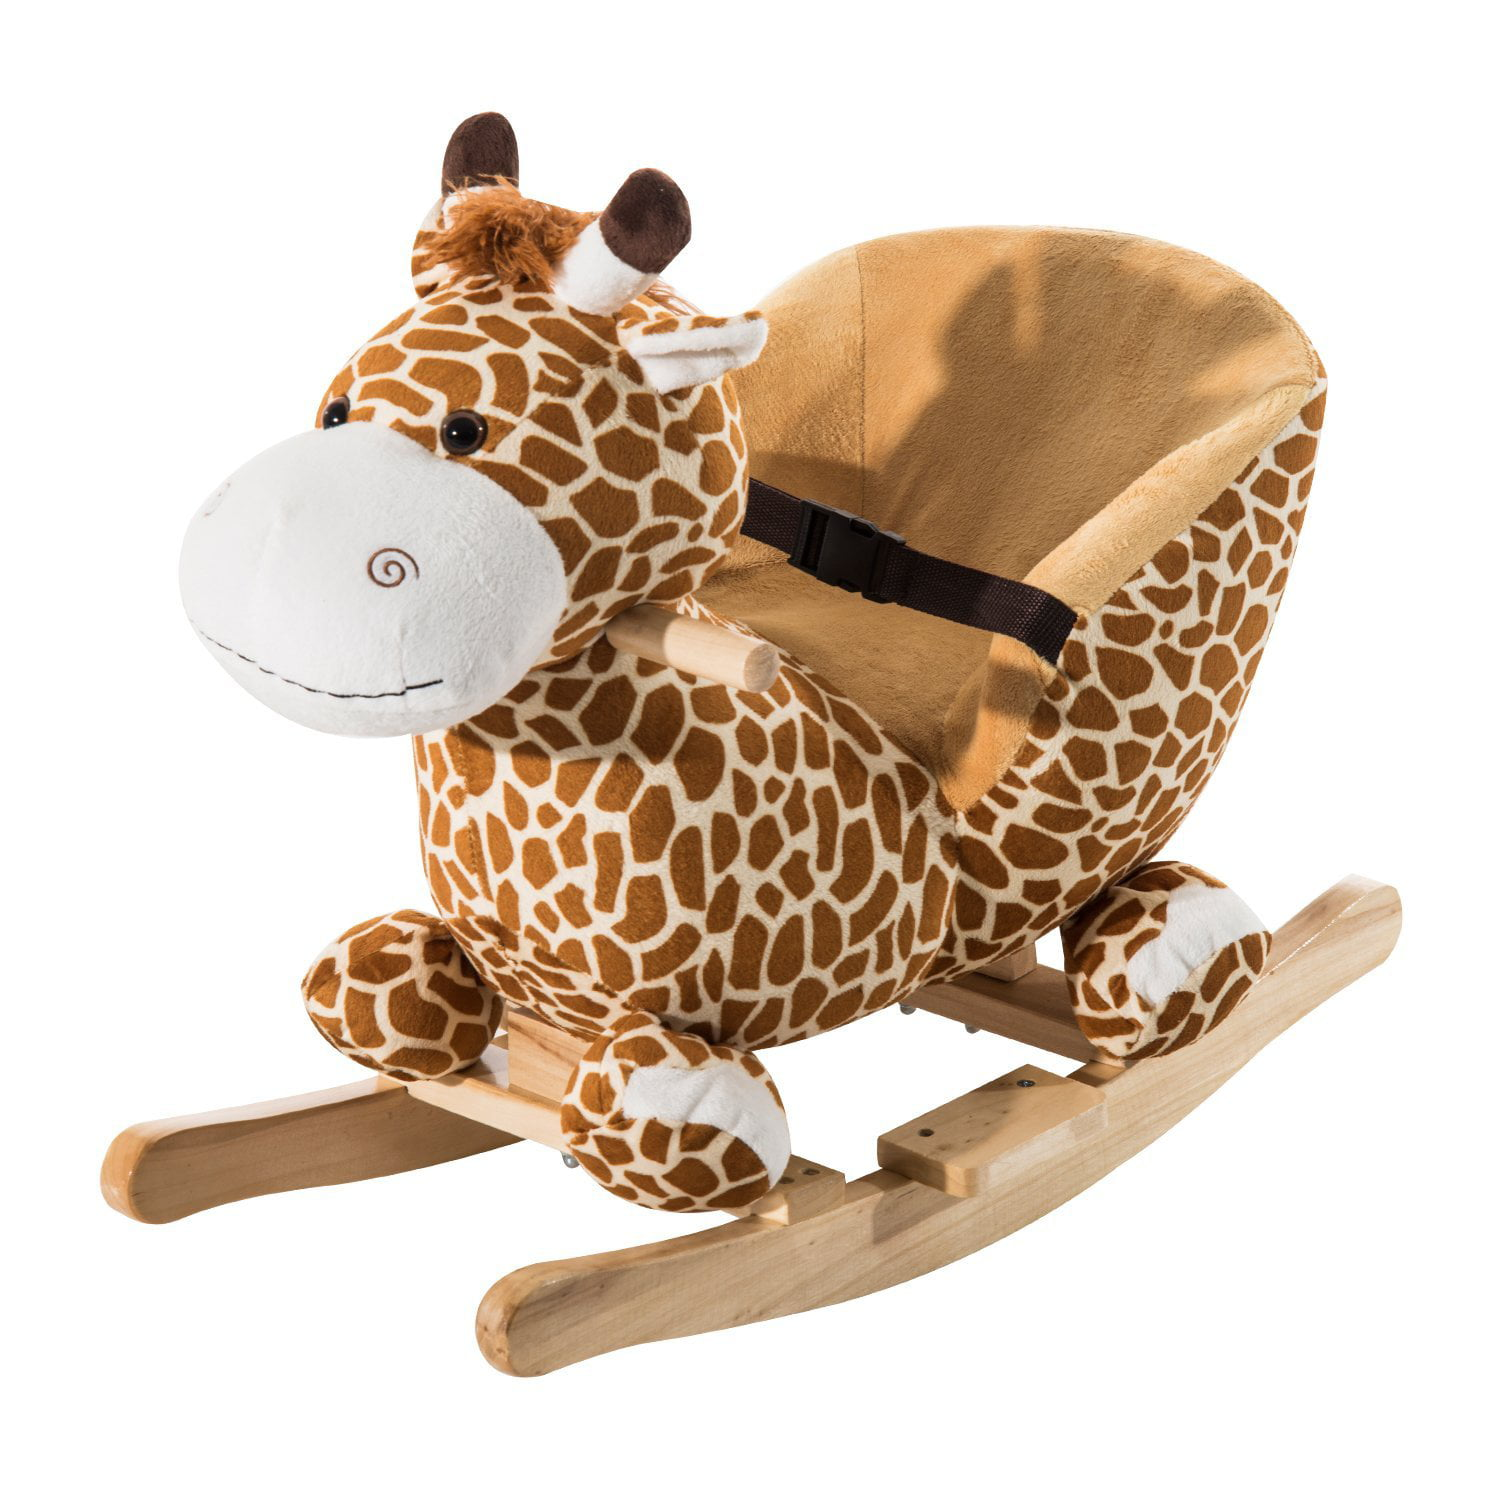 Qaba Kids Plush Giraffe Rocking Chair by Qaba